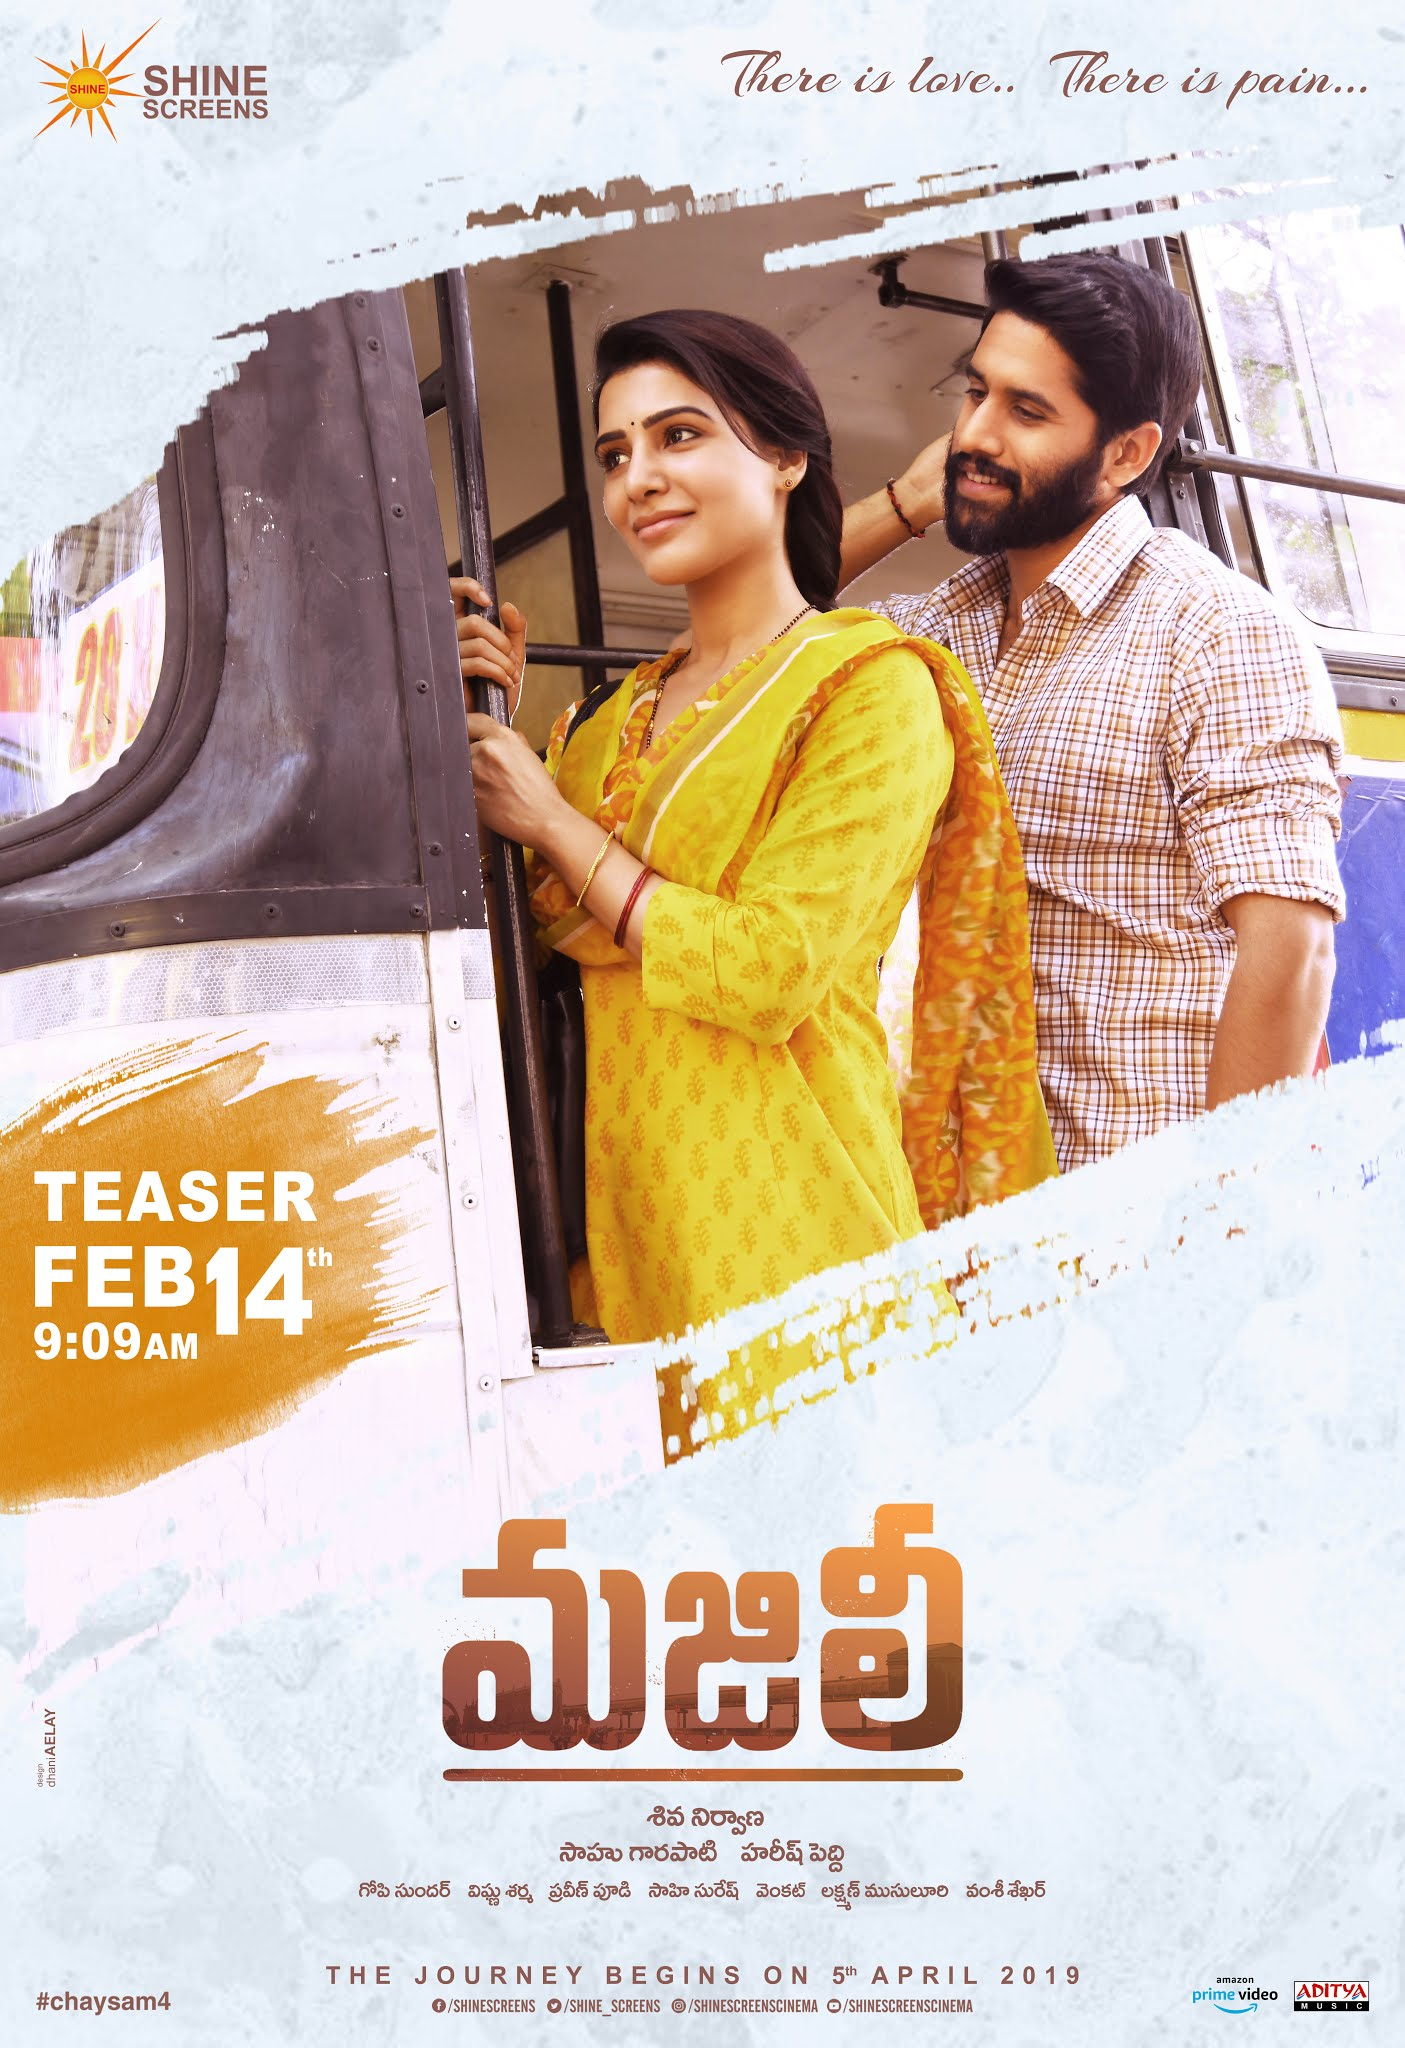 Majili Movie Teaser on Feb 14th Poster HD